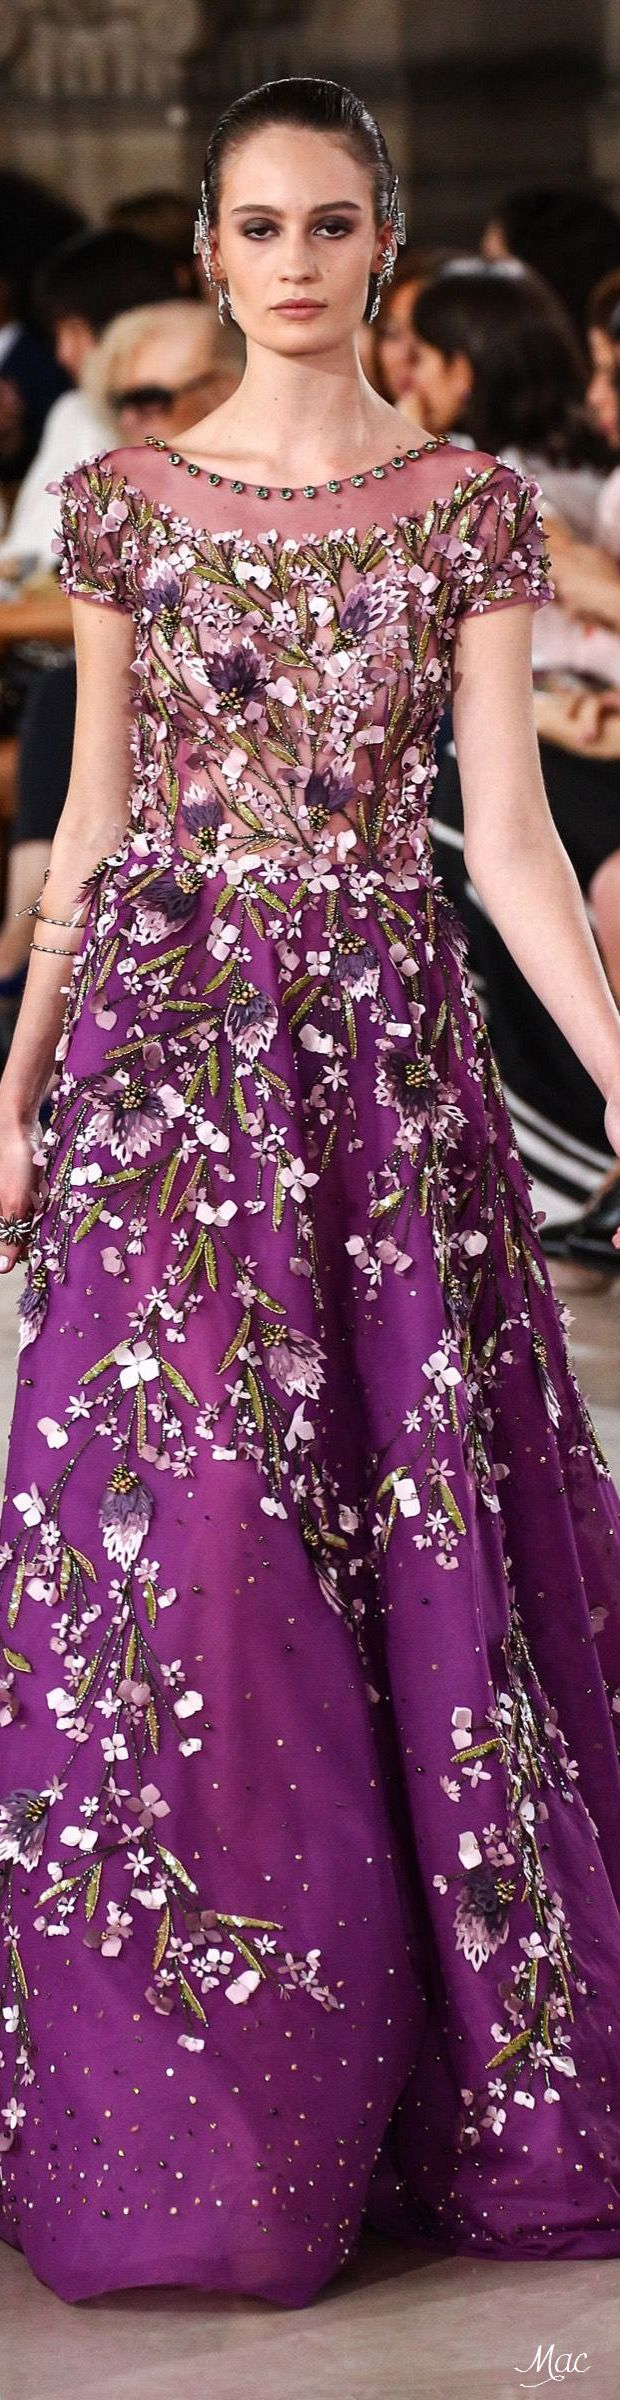 Fall 2016 Haute Couture - Georges Hobeika